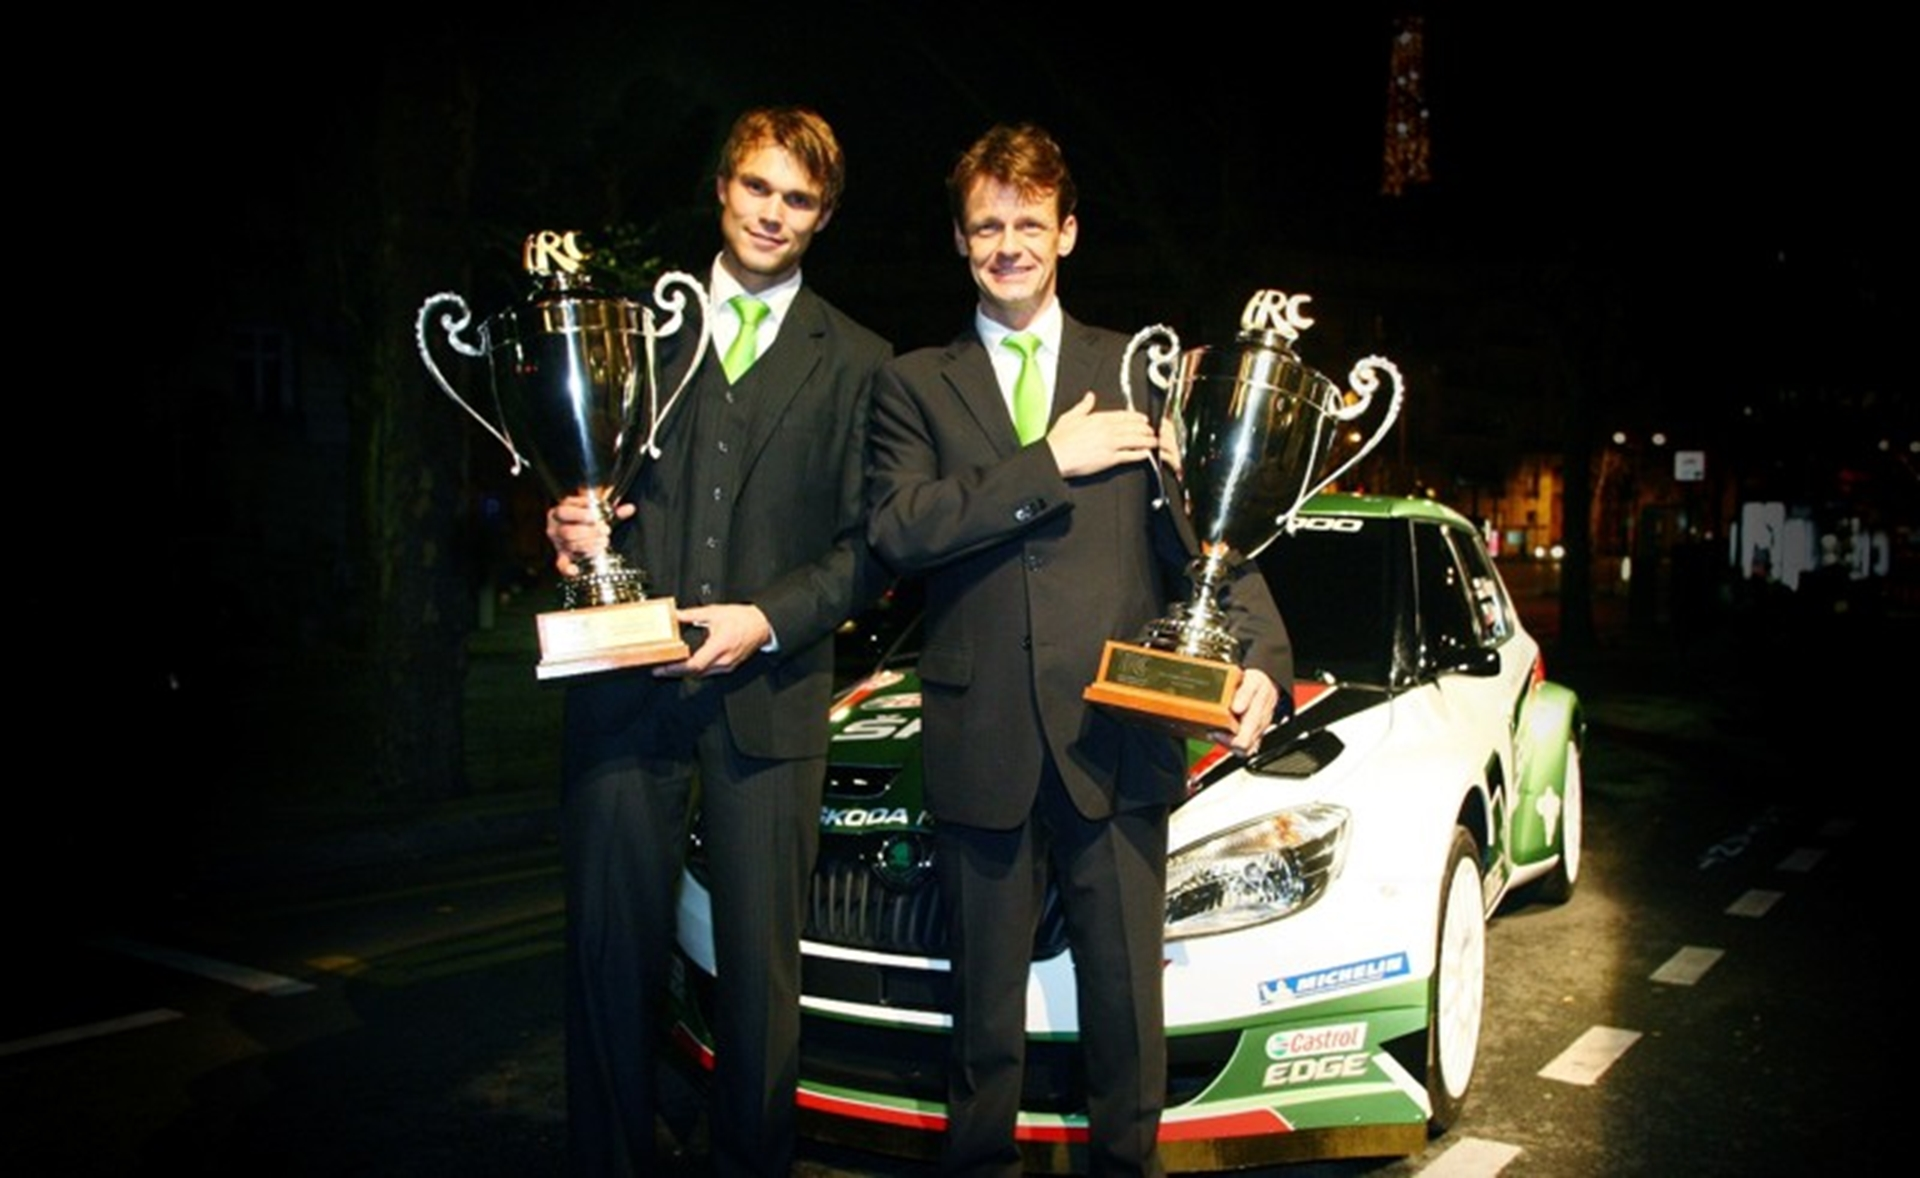 ANDREAS COLLECTS IRC DRIVERS' TROPHY IN PARIS